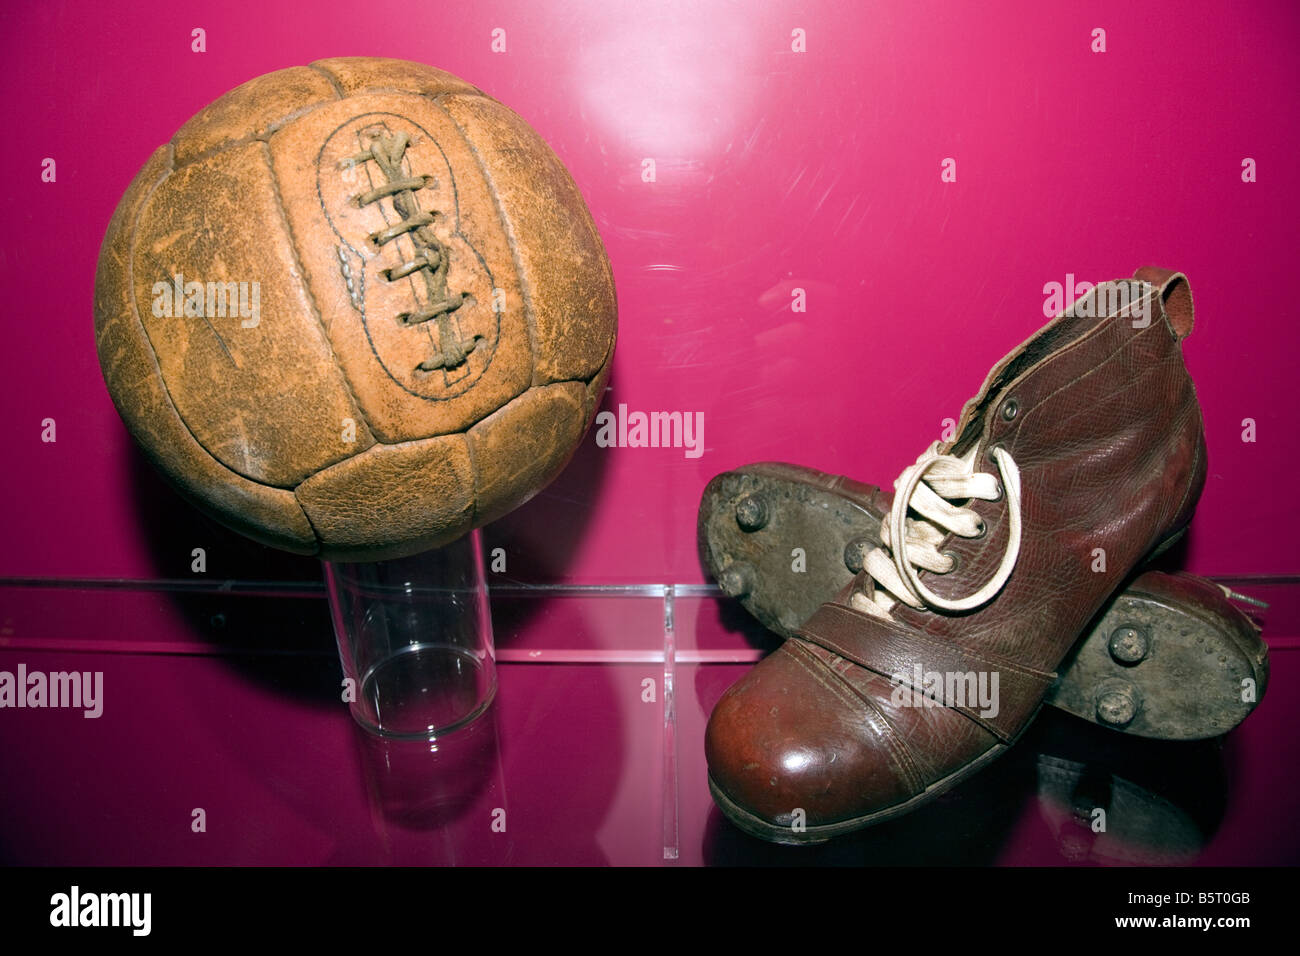 An old pair of football boots antique leather soles and studs with an old leather football at Nou Camp, Barcelona - Stock Image